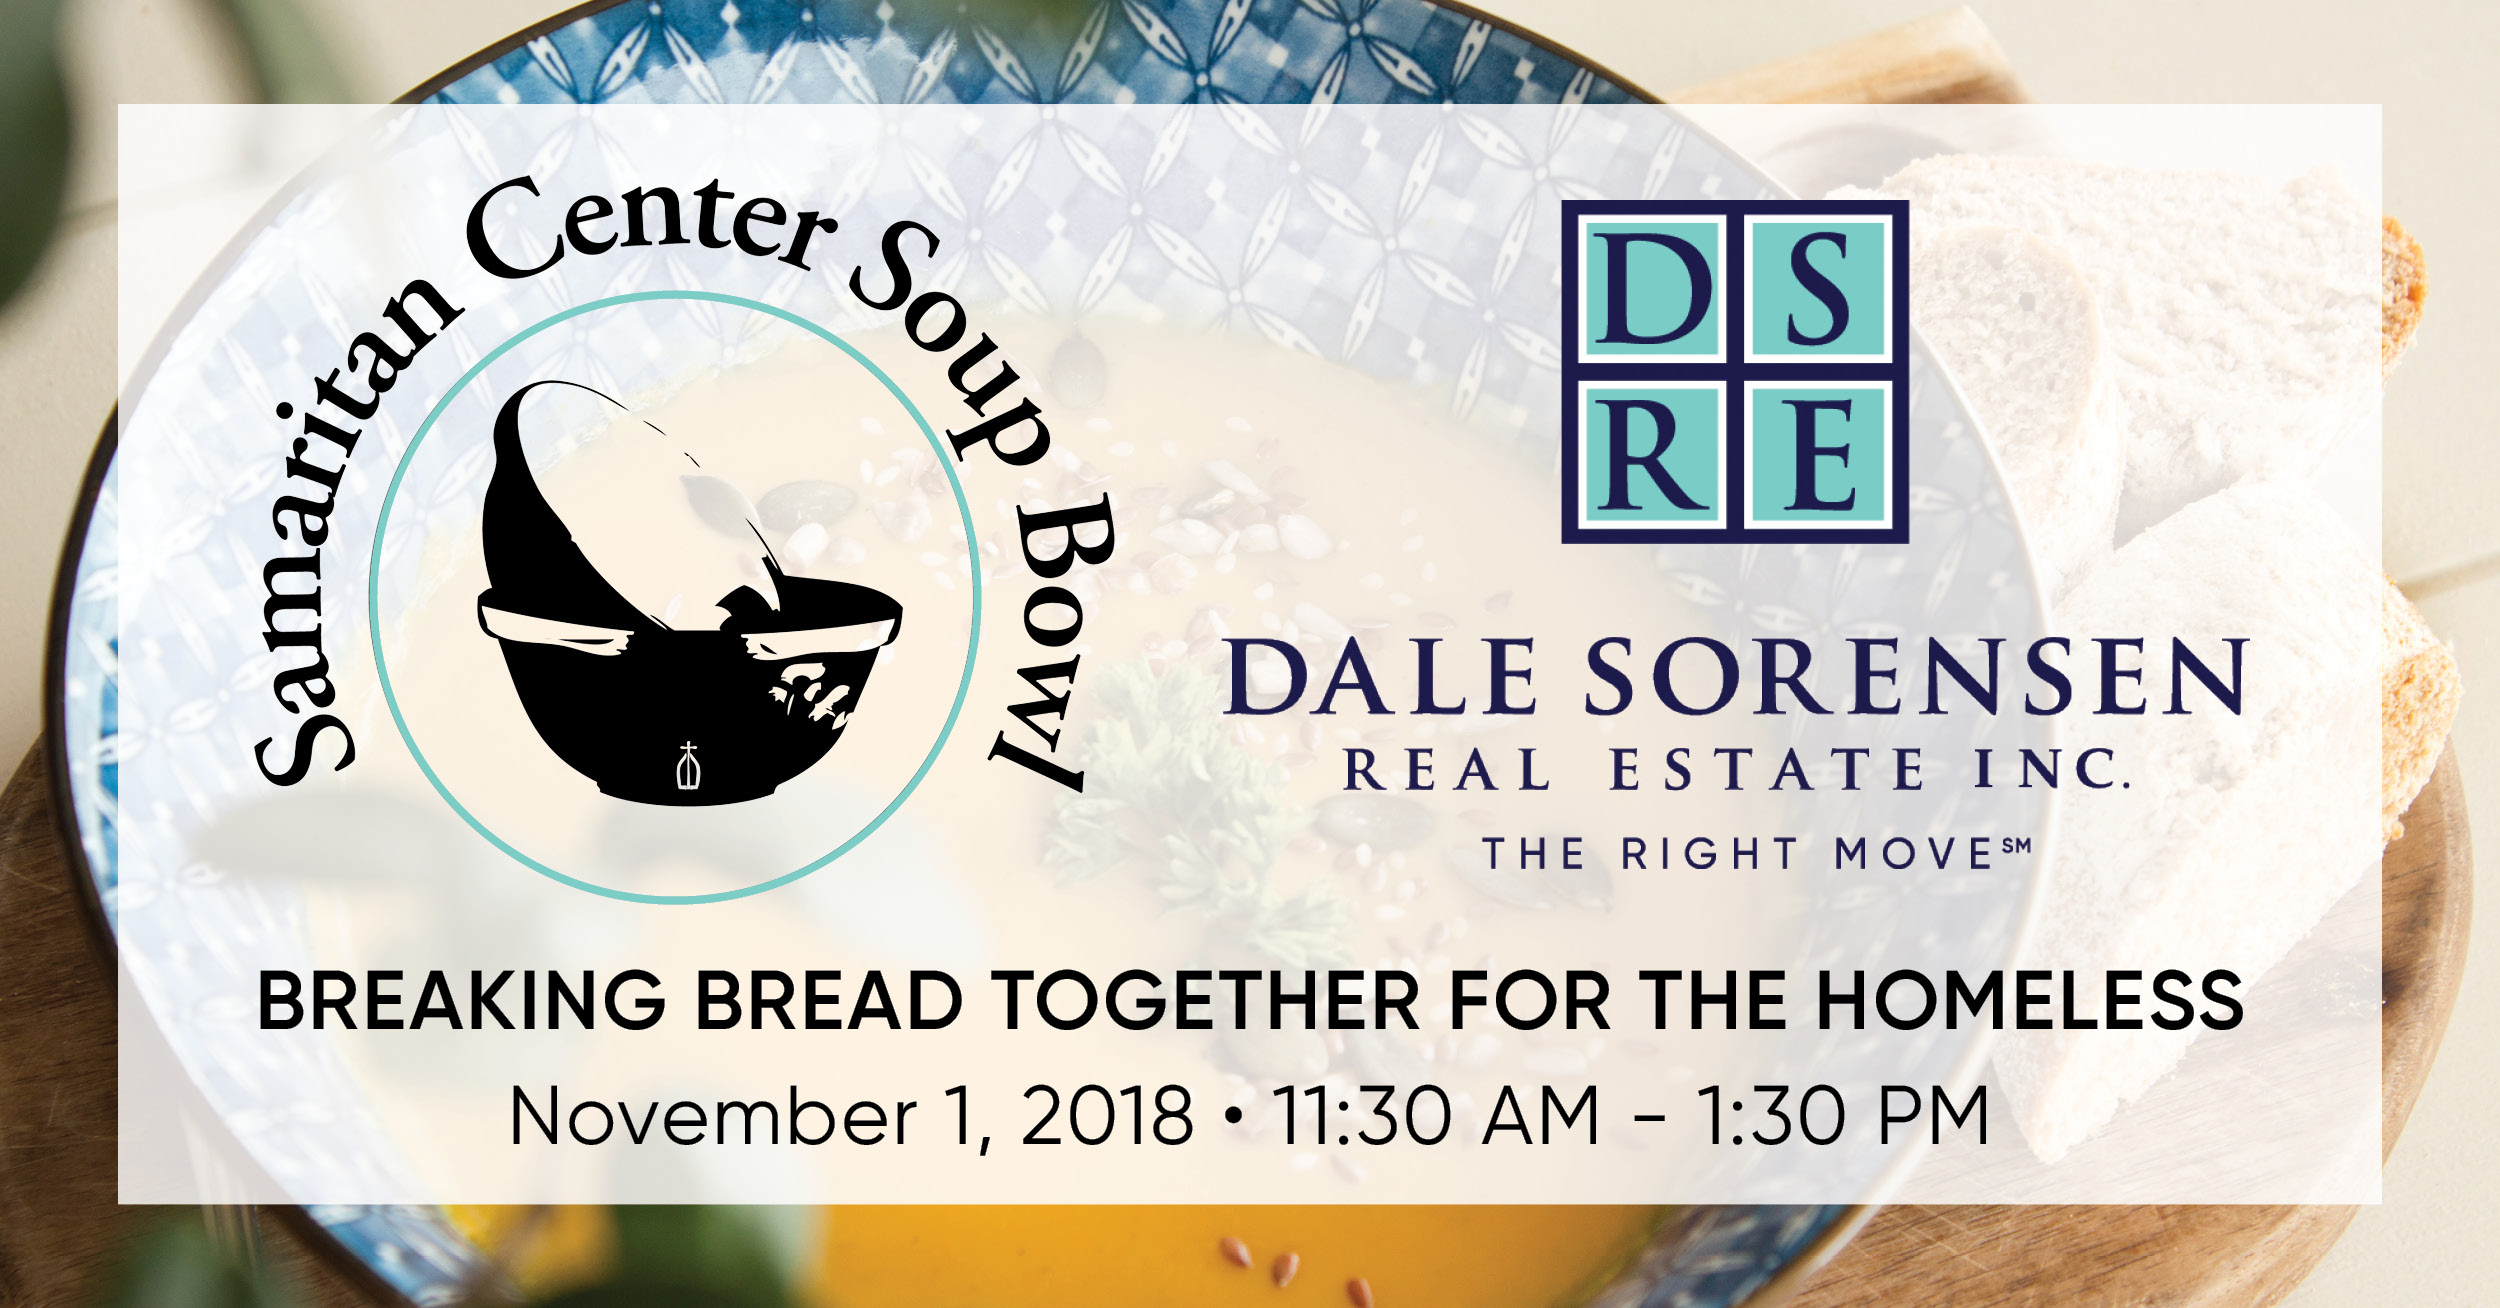 Samaritan Center Soup Bowl - Breaking Bread Together For The Homeless November 7, 2019 11:30 AM - 1:30 PM | Dale Sorensen Real Estate Inc. THE RIGHT MOVE